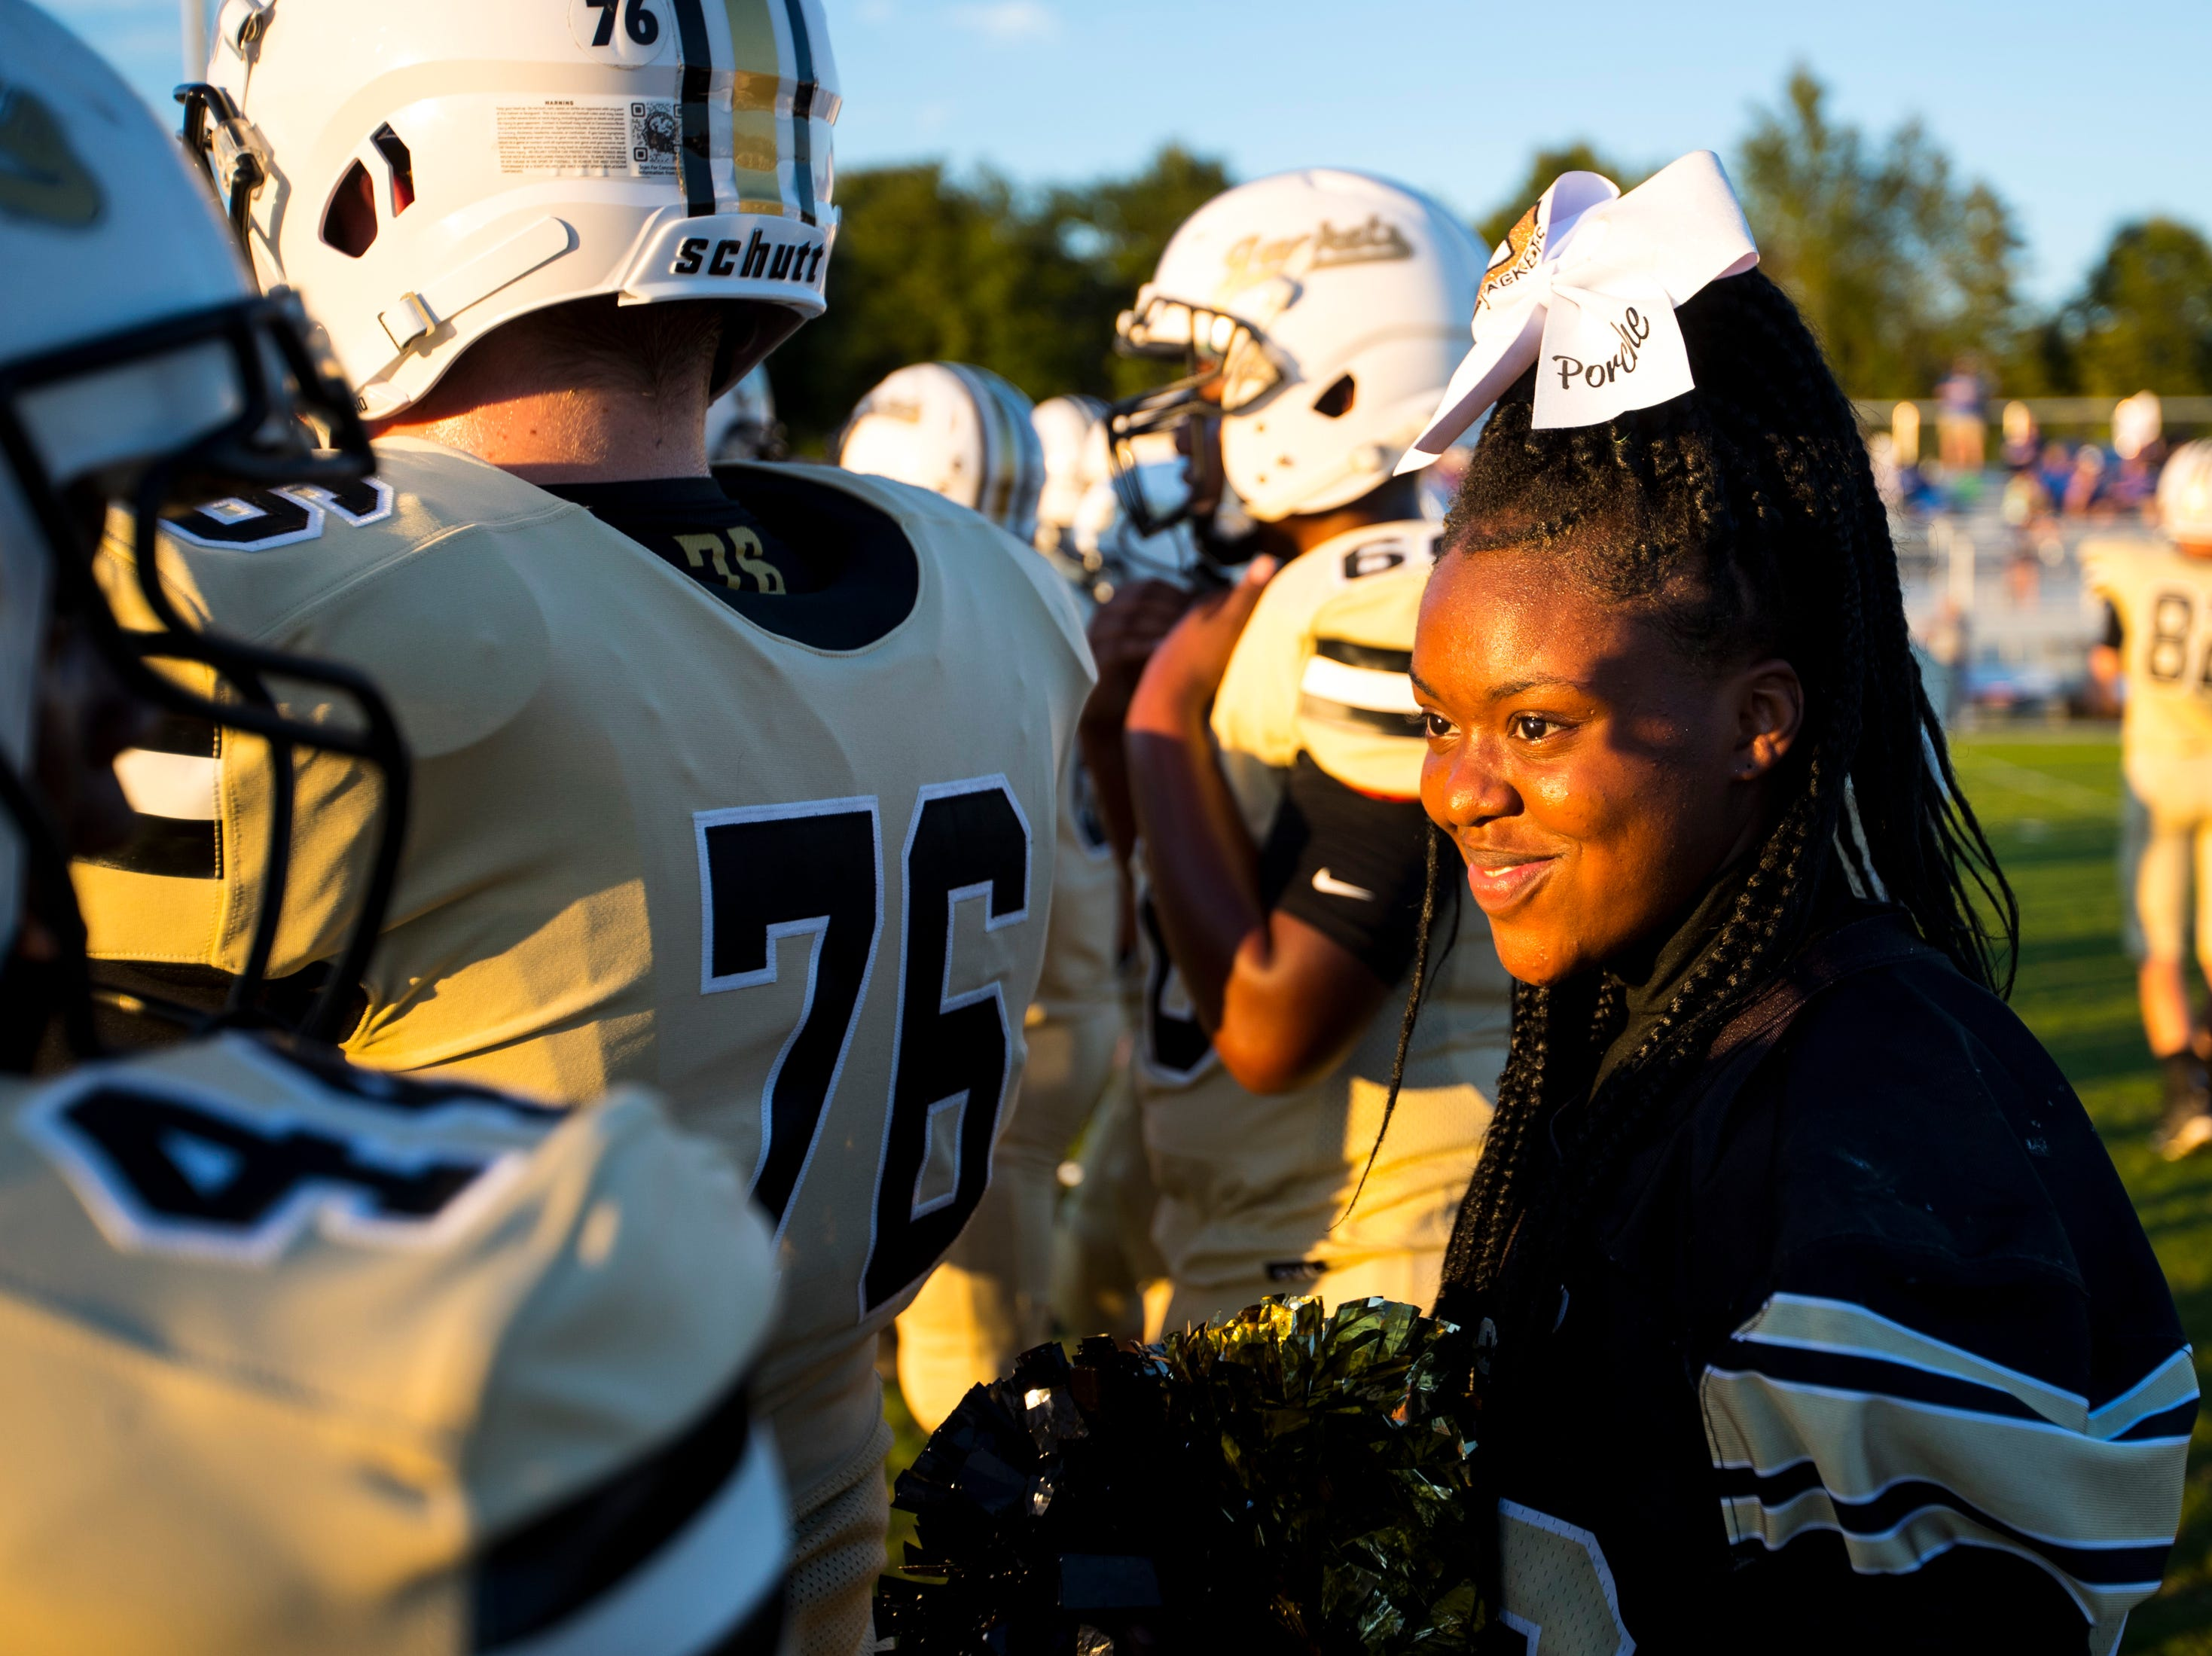 Springfield cheerleader Porche Chatman smiles while talking to Springfield's Martavious Johnson (44) before Springfield's game against White House at Springfield High School in Springfield on Friday, Sept. 14, 2018.